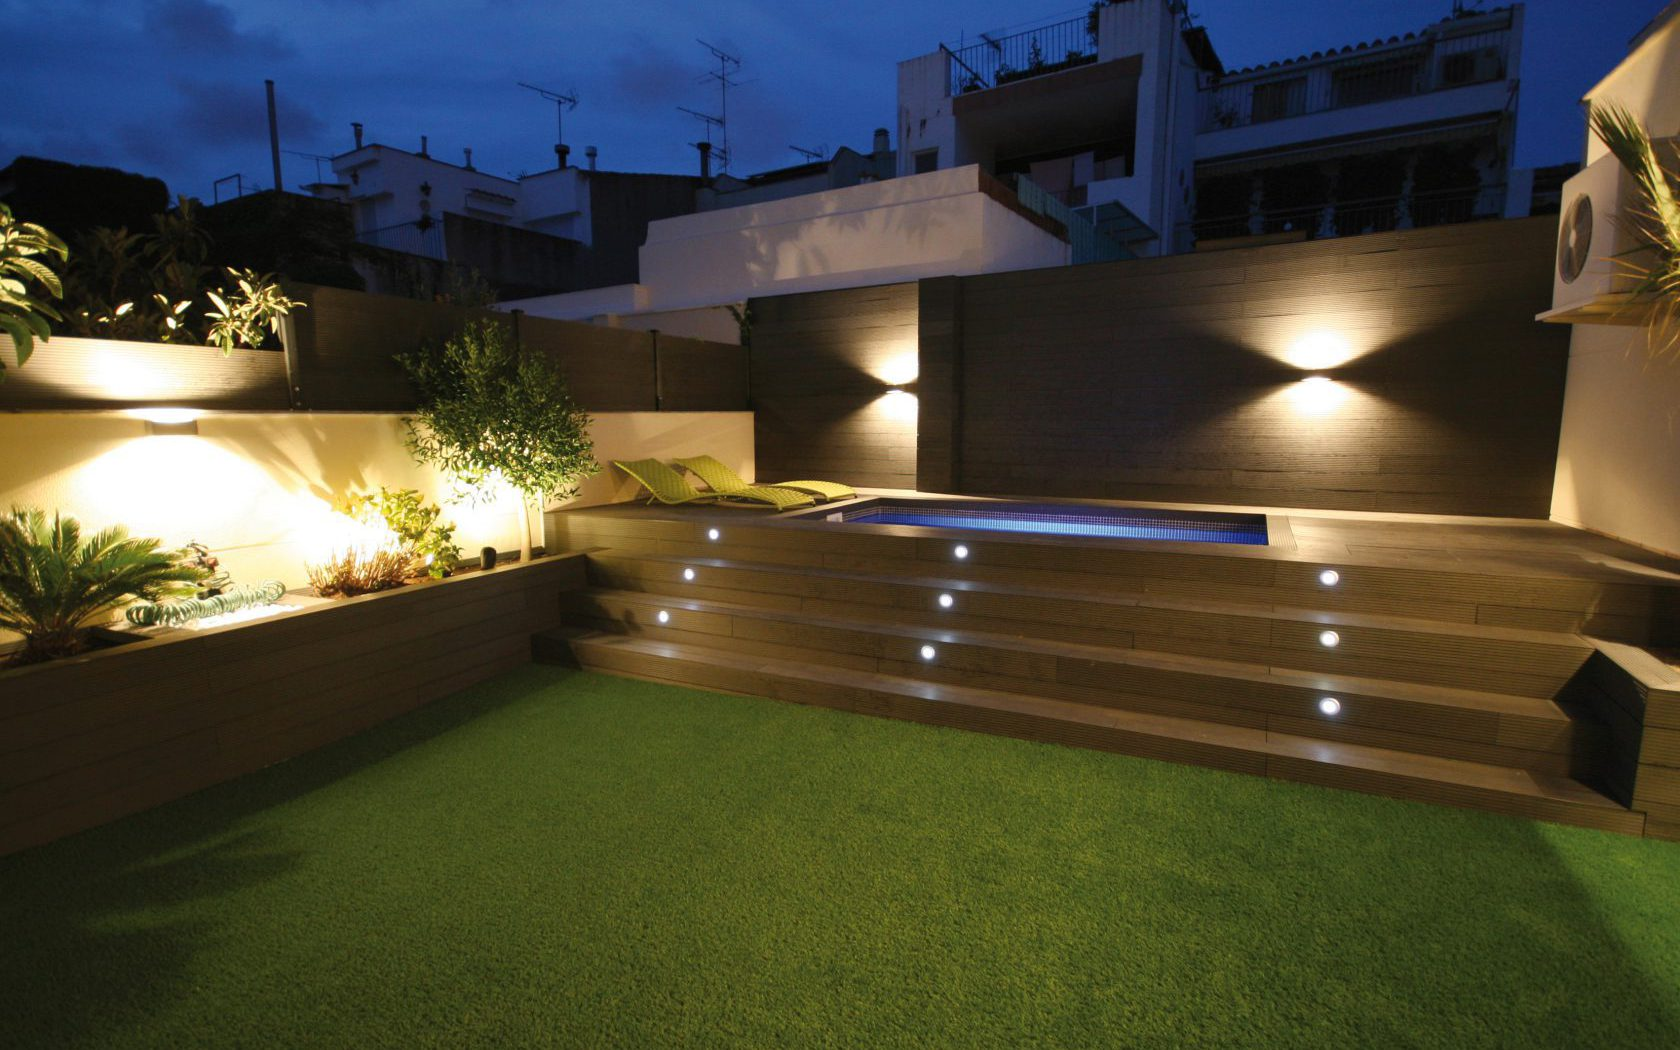 Speedgrass jard n terraza cesped artificial mobiliario for Terrazas de jardin